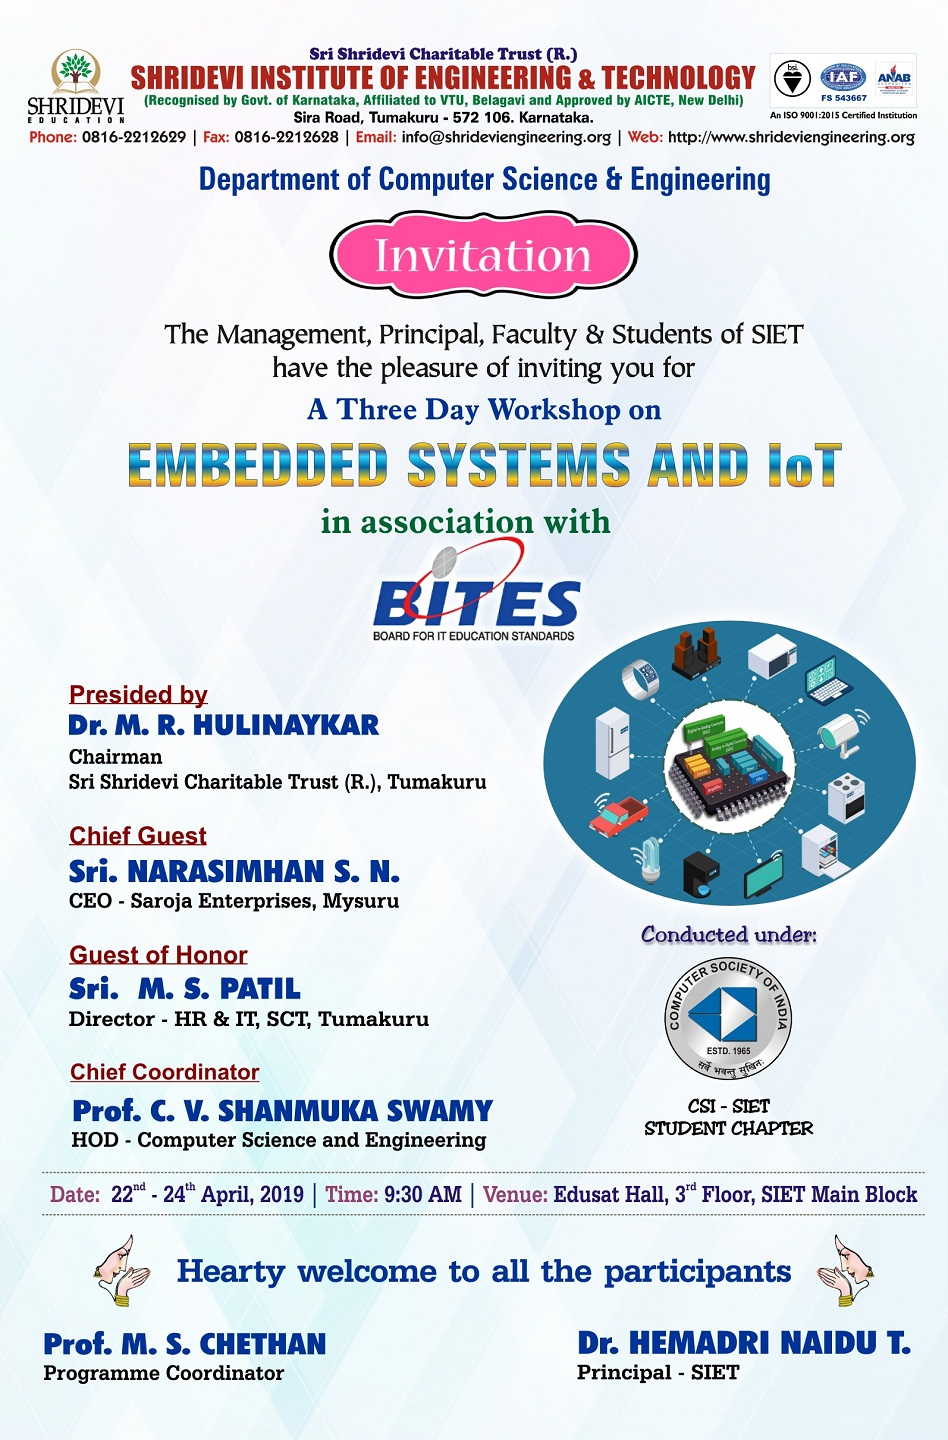 A Three Day Workshop on Embedded Systems and IoT